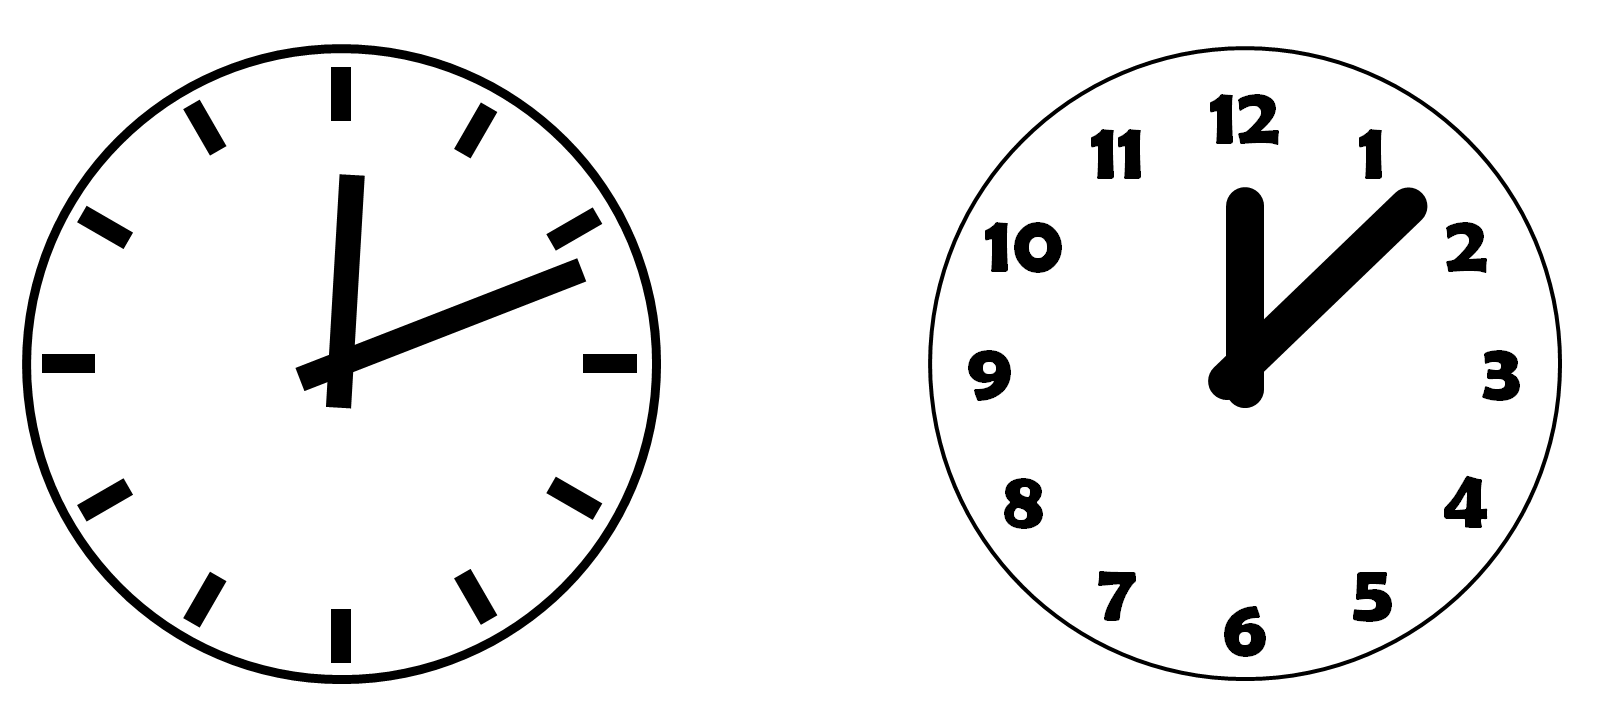 jpg royalty free download In powerpoint clock icons. Types drawing animated face